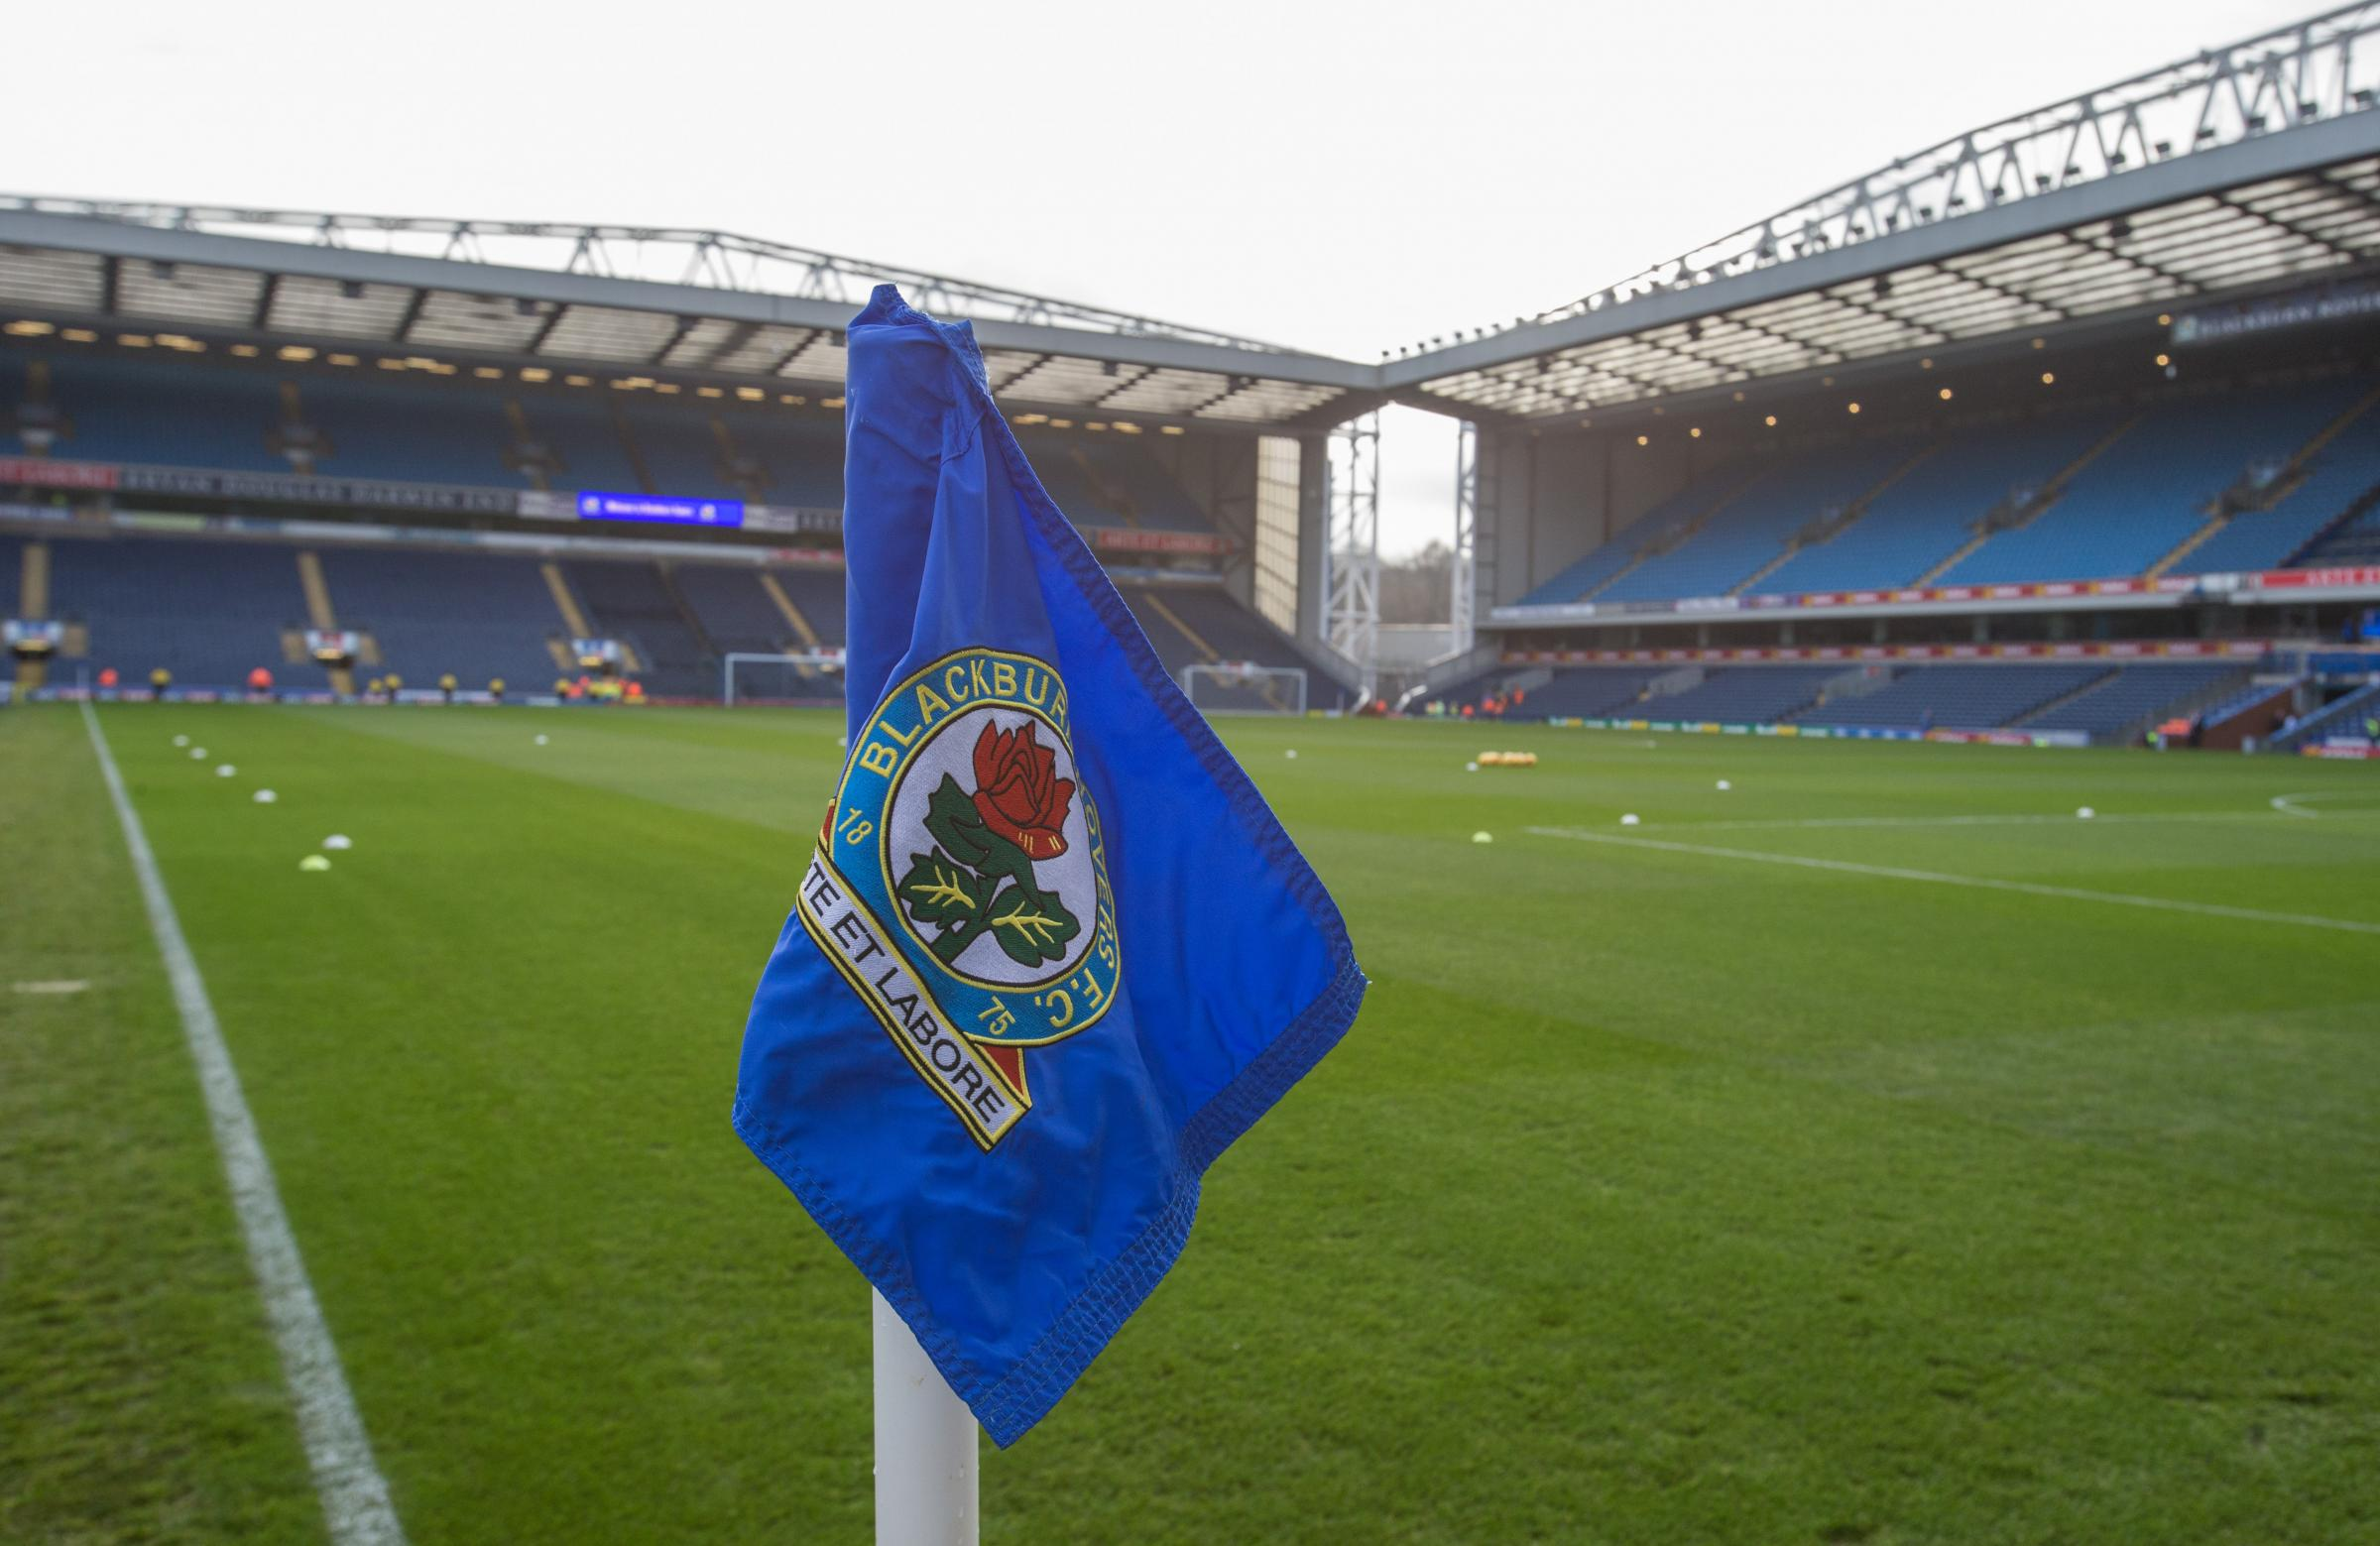 Ewood Park, home of Blackburn Rovers